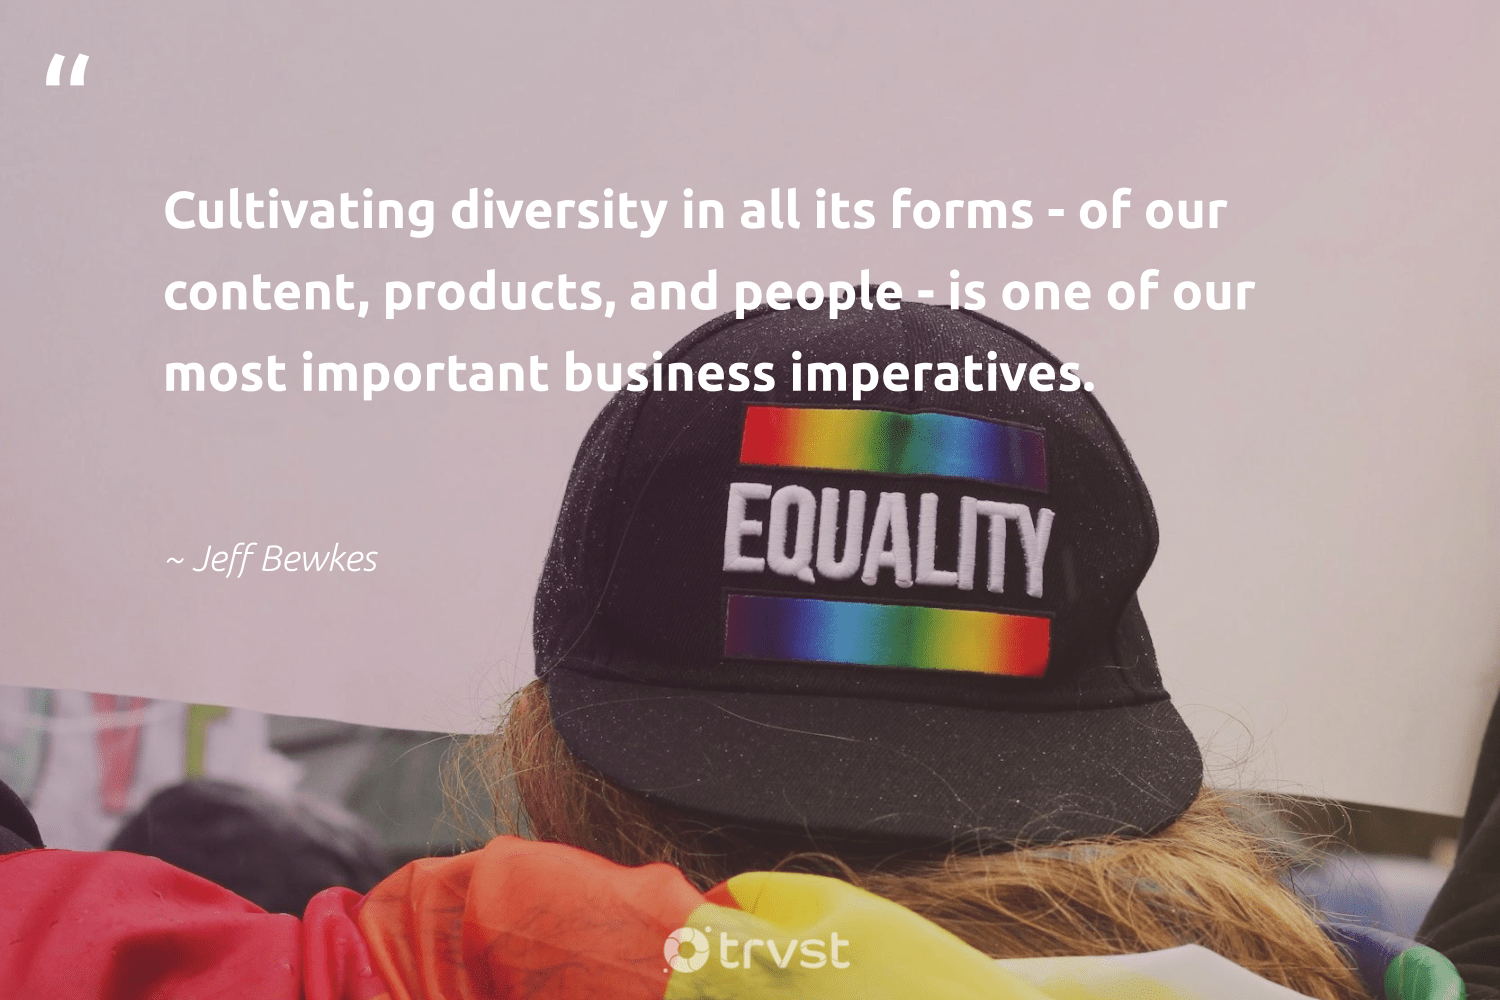 """Cultivating diversity in all its forms - of our content, products, and people - is one of our most important business imperatives.""  - Jeff Bewkes #trvst #quotes #diversity #inclusion #discrimination #giveback #socialchange #thinkgreen #representationmatters #makeadifference #socialgood #changetheworld"